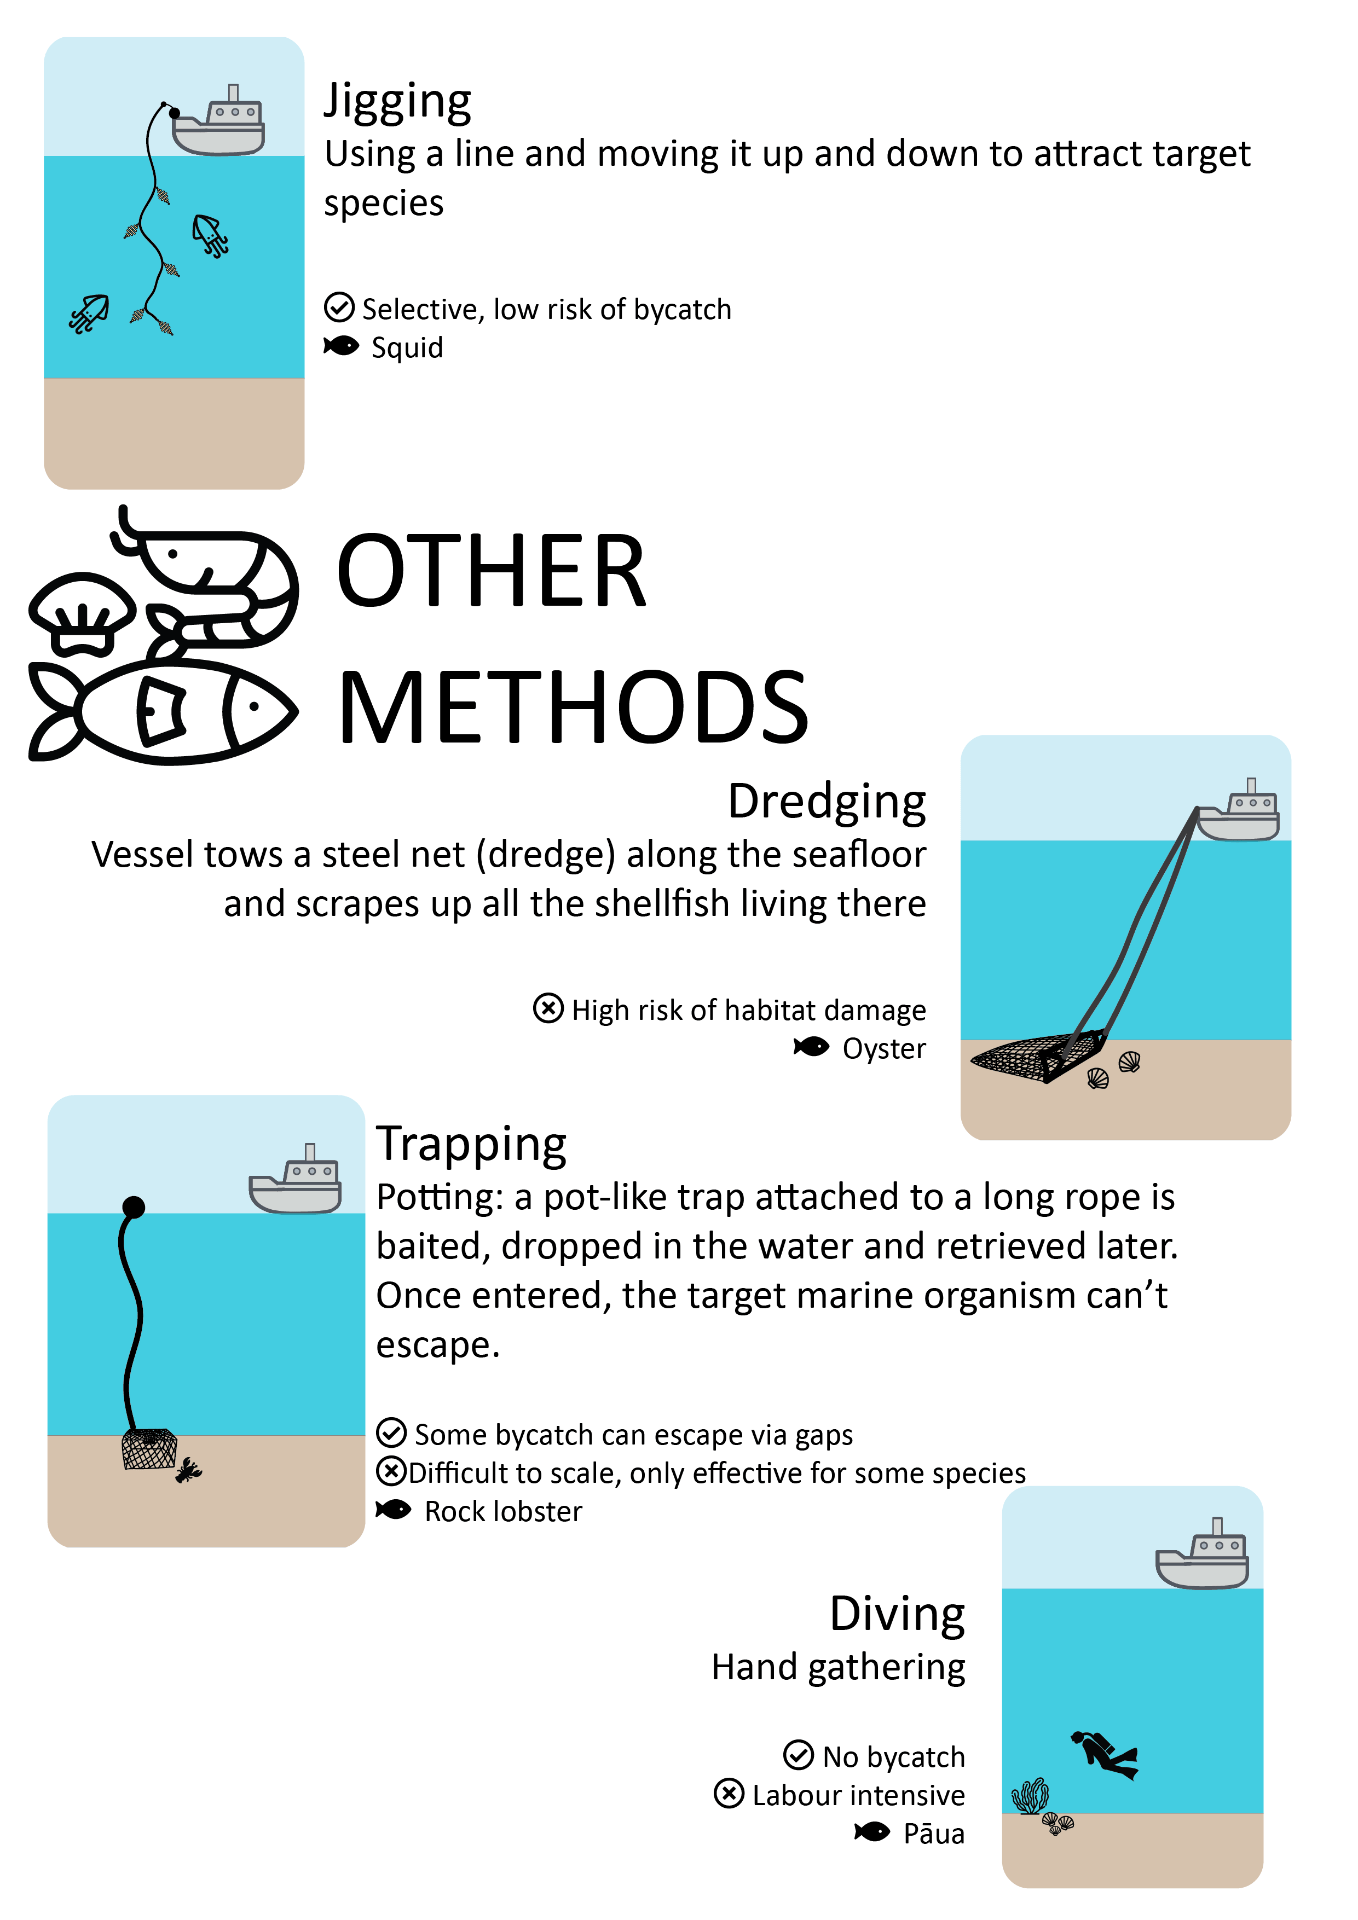 Jigging involves using a line and moving it up and down to attract target species. It is selective with a low risk of bycatch. Other methods include dredging, where a vessel tows a steel net (dredge_ along the seafloor and scrapes up all the shellfish living there. This has a high risk of habitat damage. Trapping or potting uses a pot-like trap attached to a long rope which is baited, dropped in the water and retrieved later. Once entered, the target marine organism can't escape. Some bycatch can escape via gaps. Trapping is difficult to scale and is only effective for some species. Diving to hand-gather species such as pāua does not have any bycatch but is labour intensive.